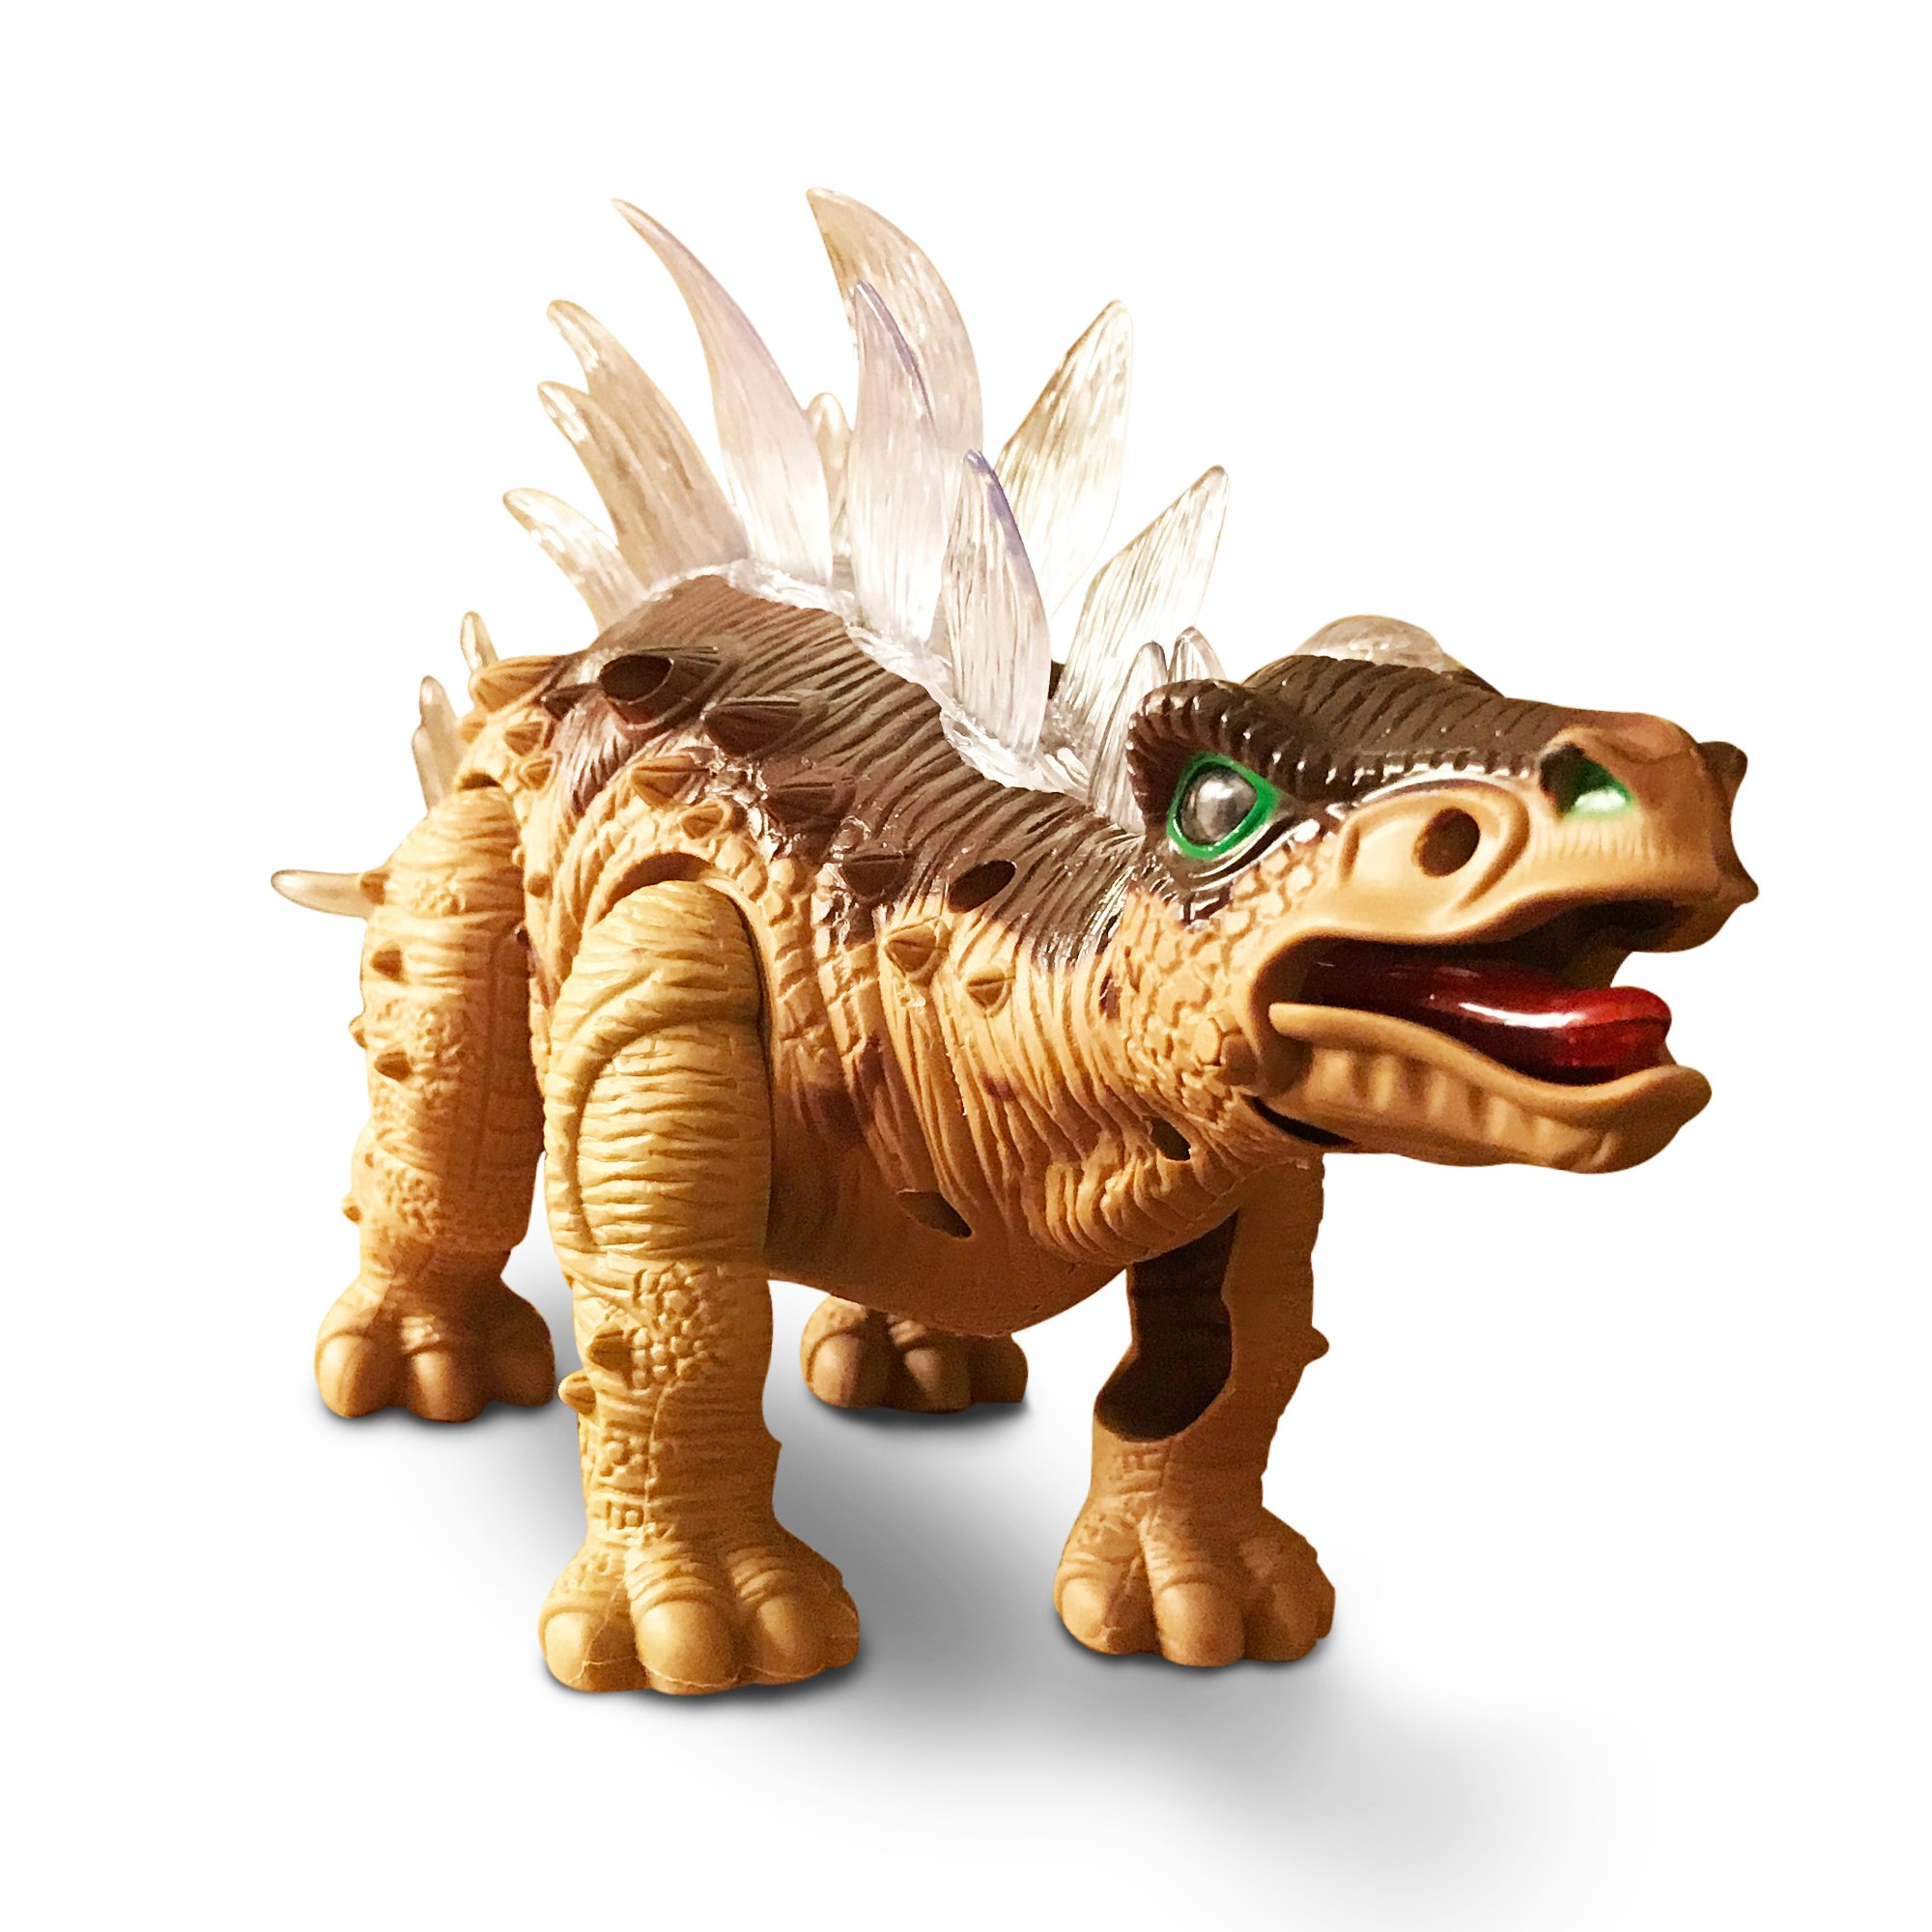 LilPals Live Action Brown Stegosaurus Walking Dinosaur - Battery Powered, with Dinosaur Sounds and Color Changing Lights (Brown)